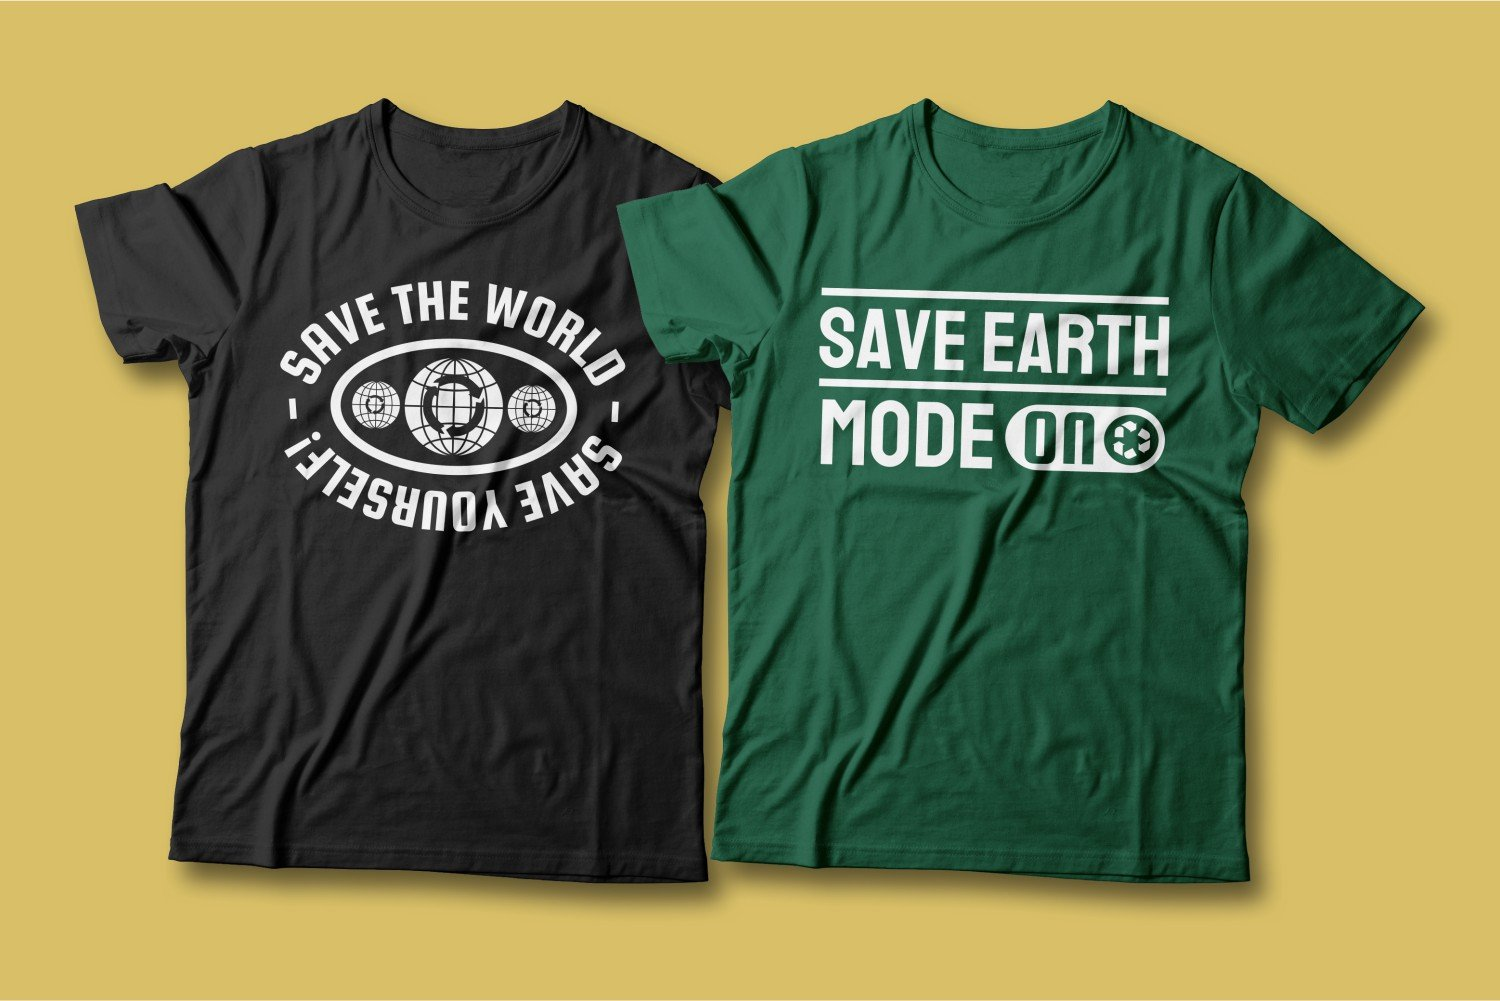 Two T-shirts - one green with modern lettering, the other - black.